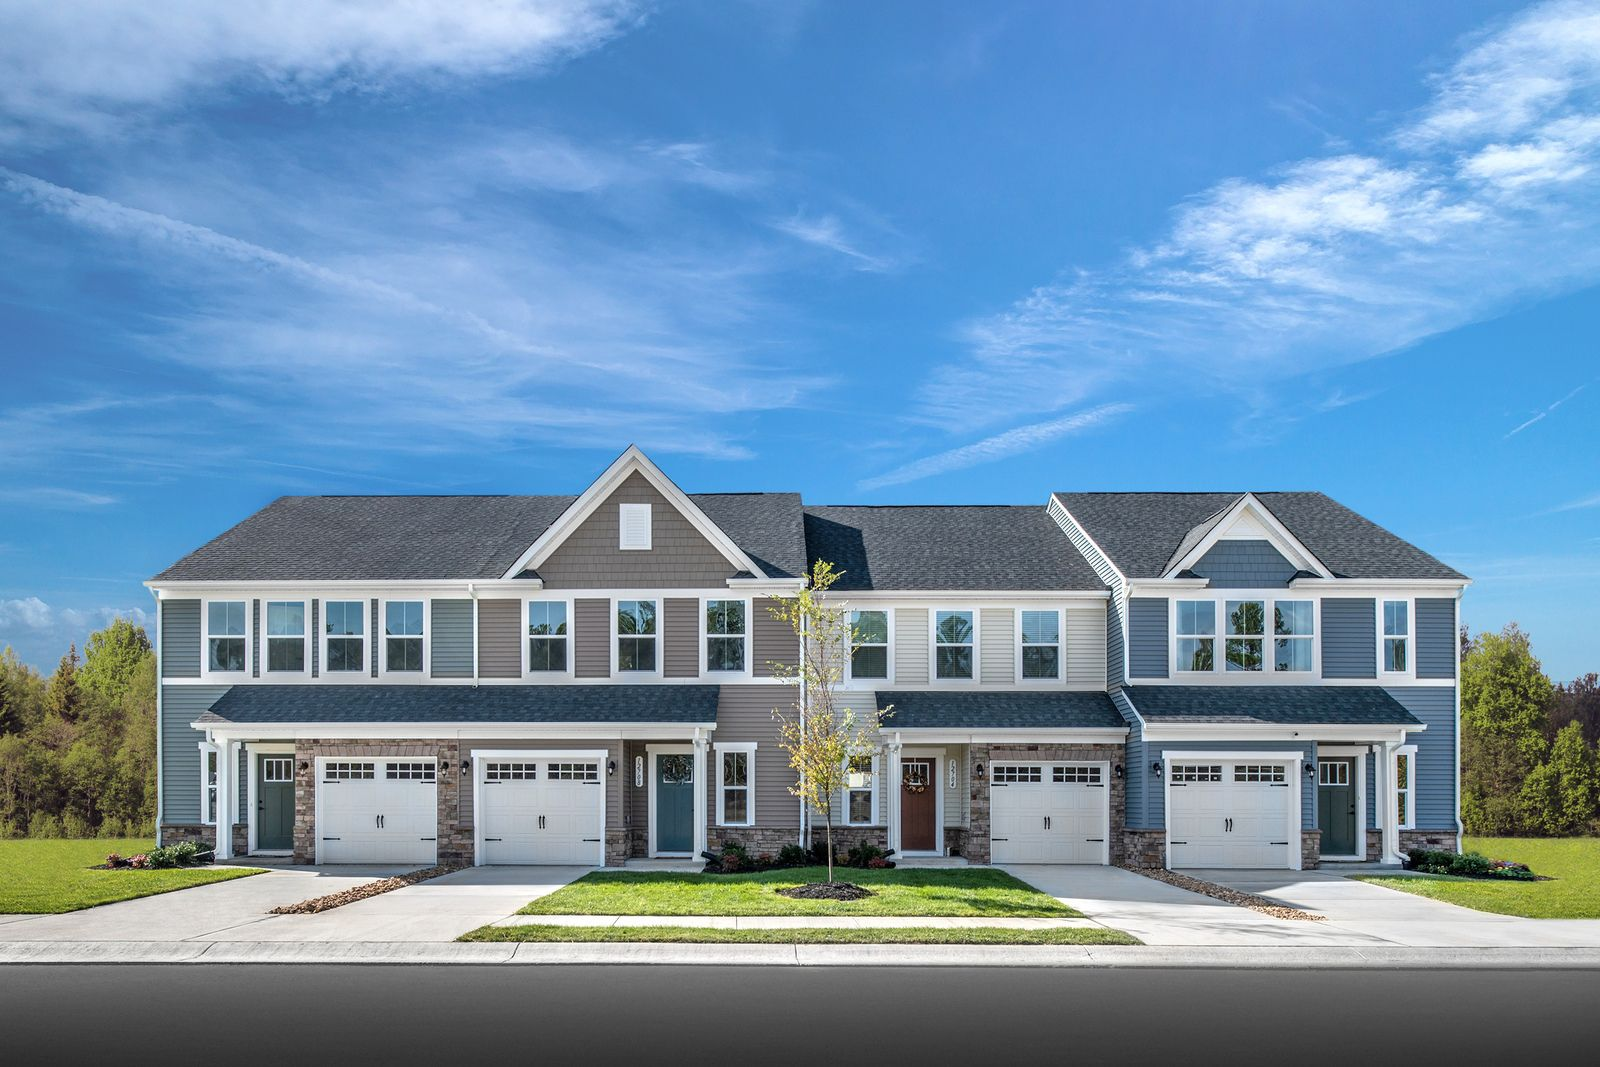 Parkview Preserve - New Townhomes Near Downtown Nashville:Final phase now selling! Enjoy alow maintenance lifestyle with rare first floor owner's suite options& 1- and 2-car garages.Schedulea virtual or in-person visit to tour our decorated models today!